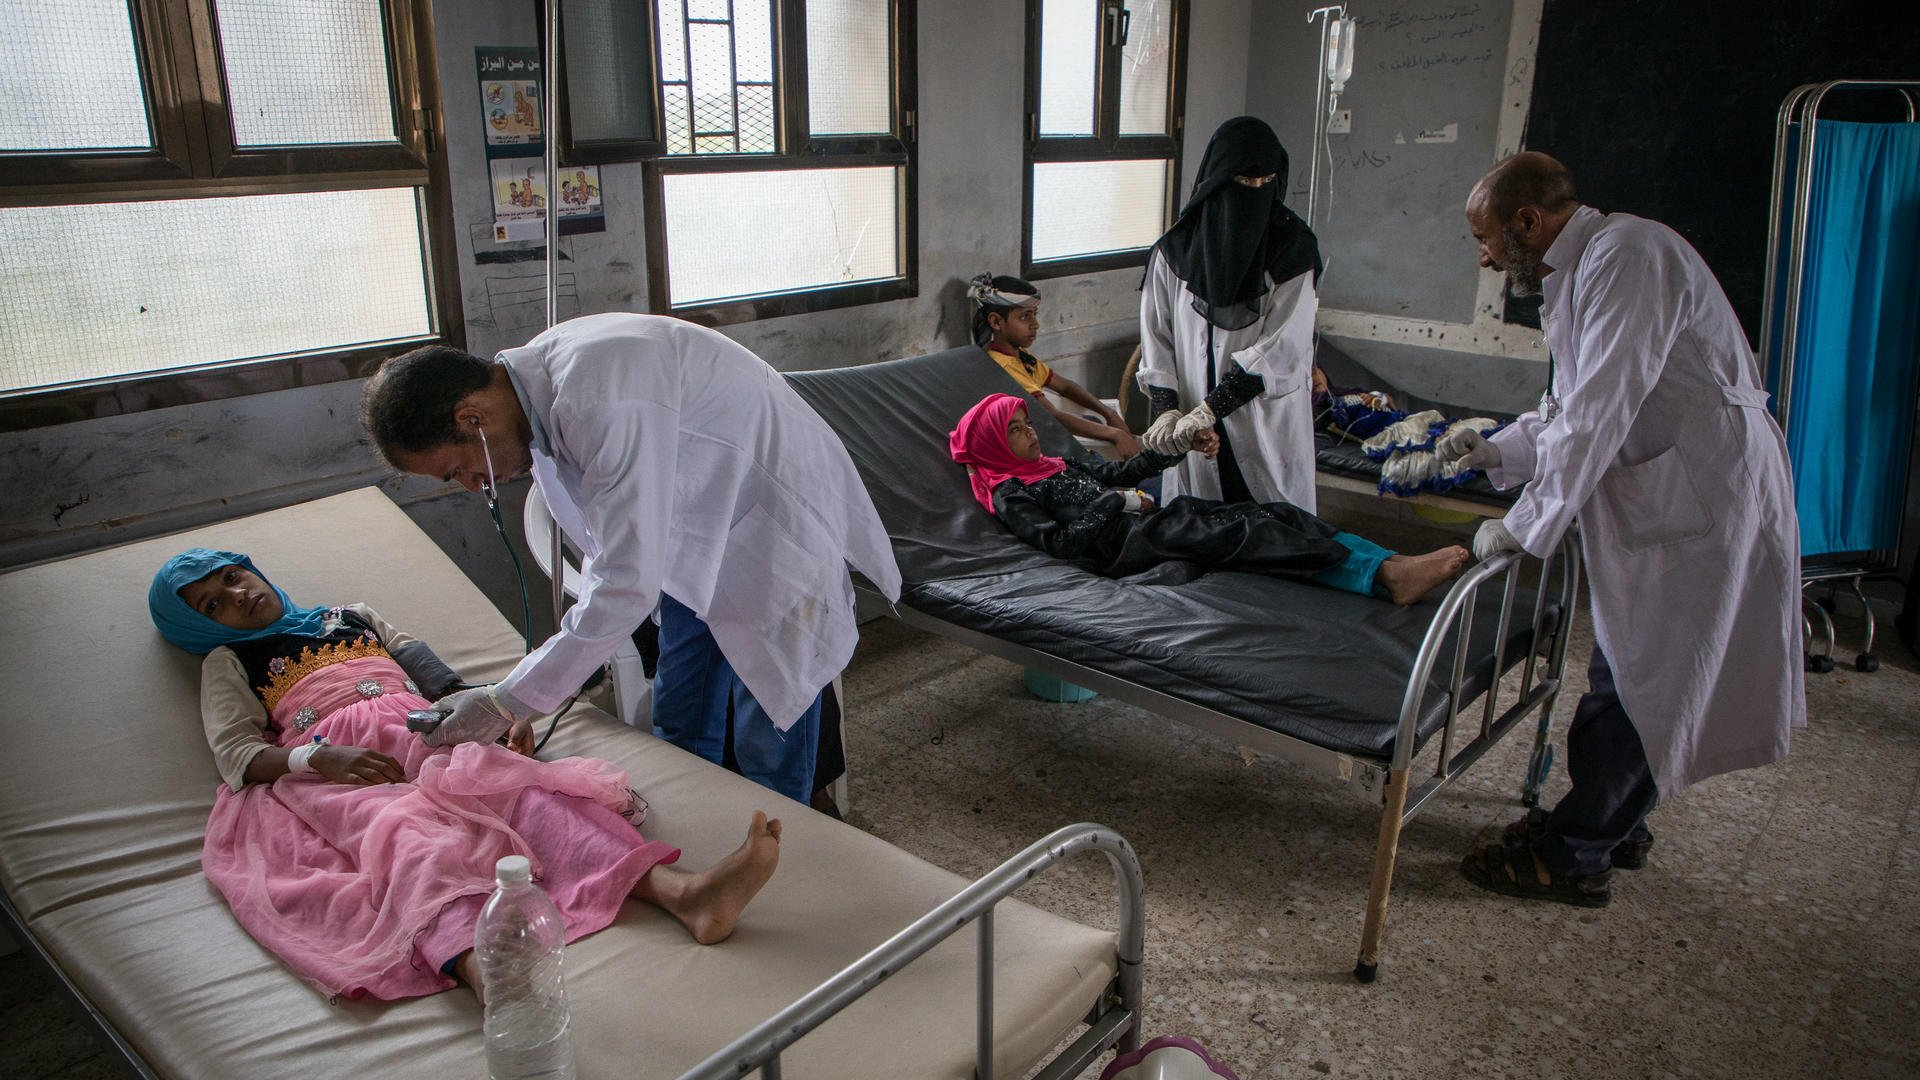 Doctors care for children who are patients at an IRC diarrhea treatment center in Yemen